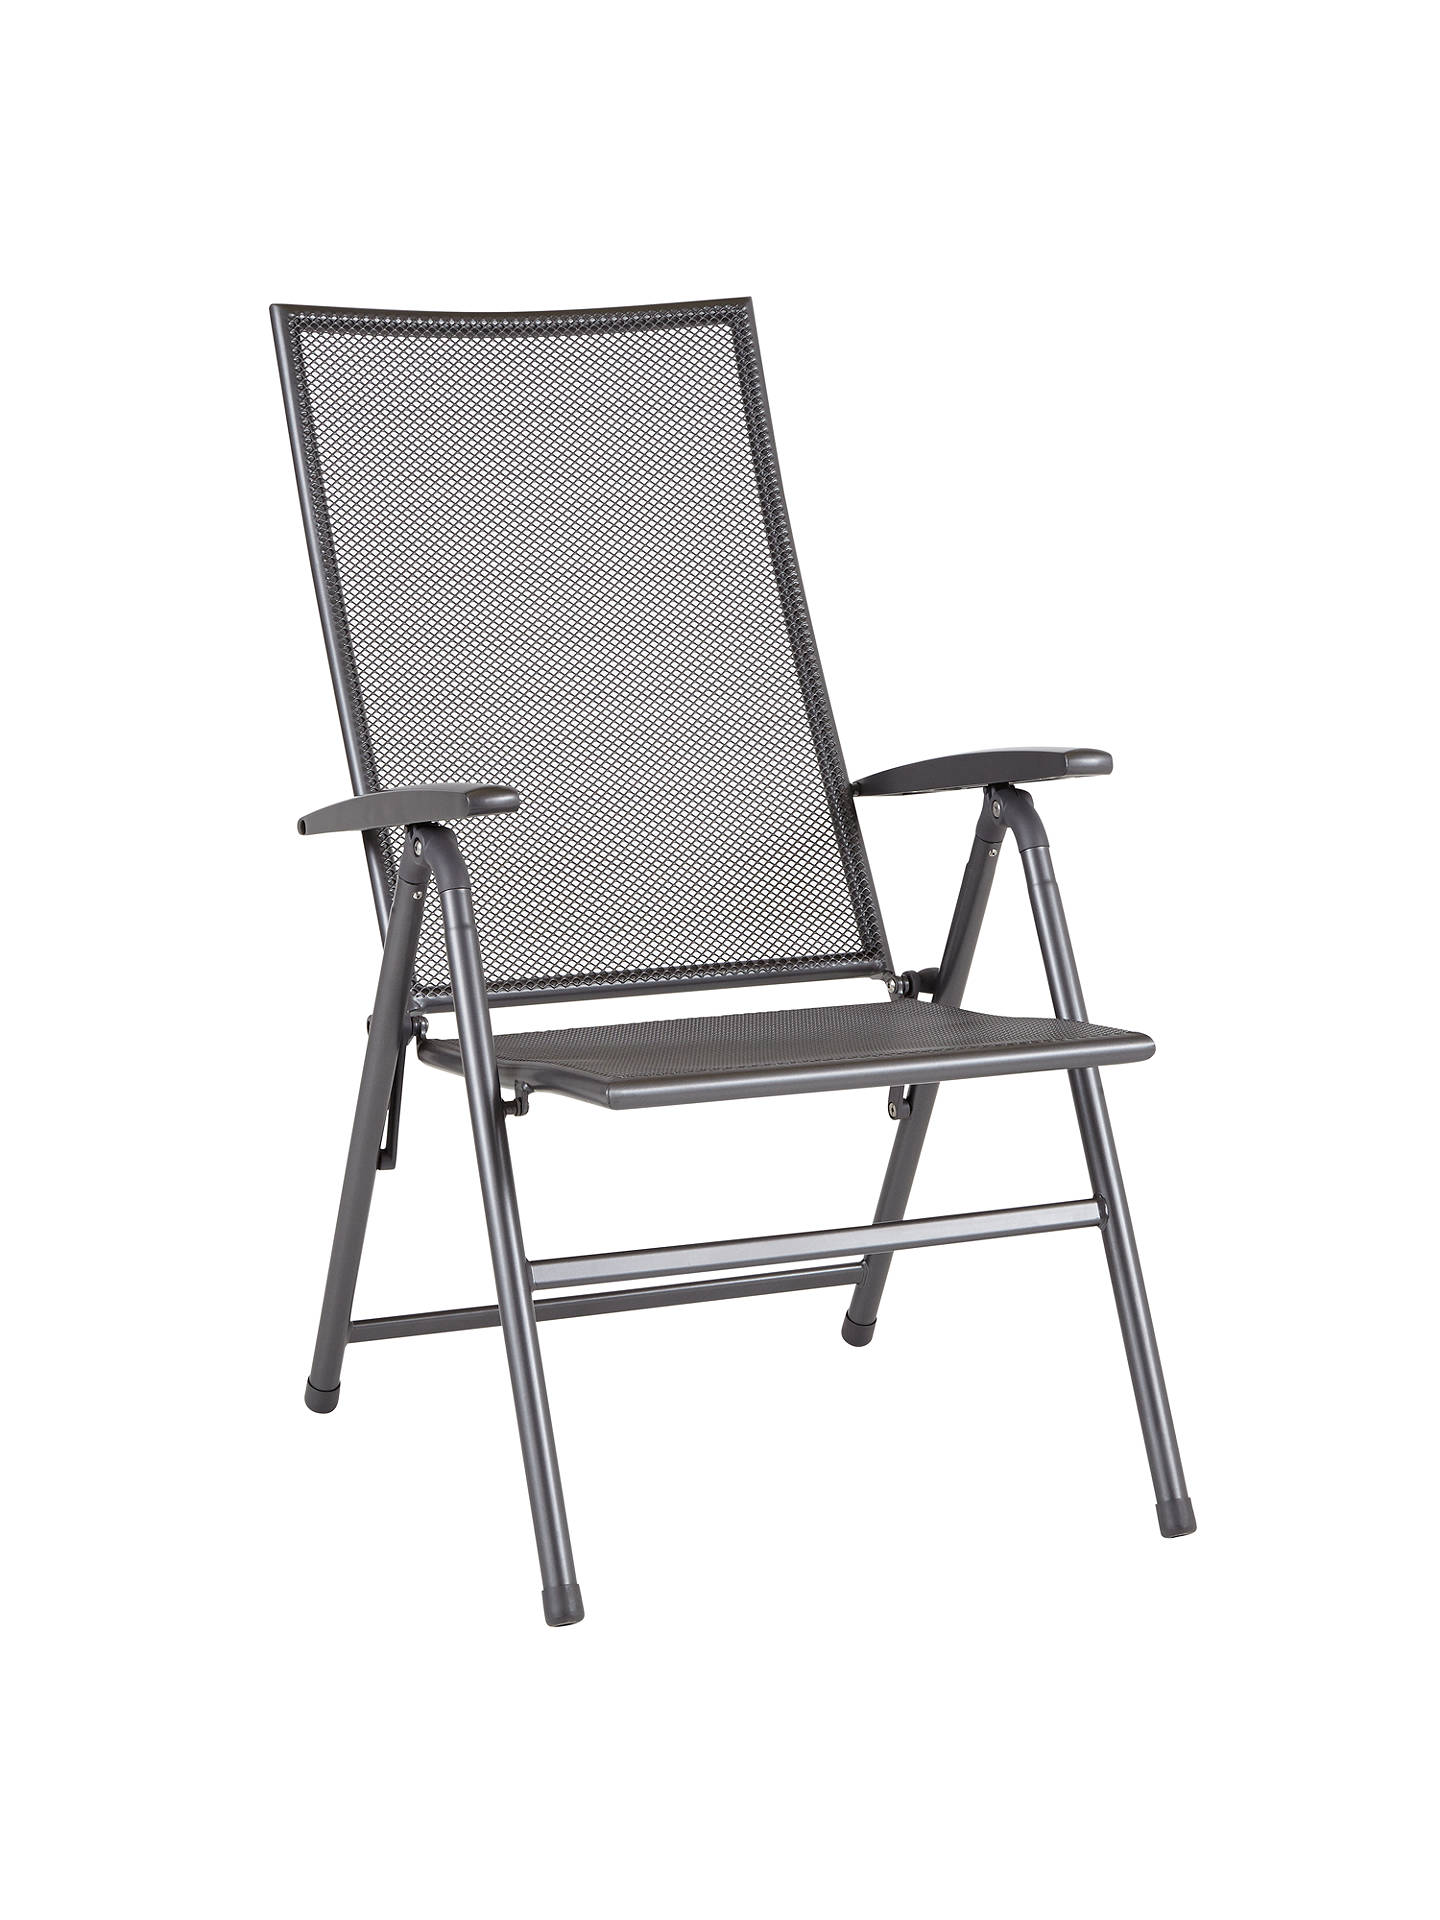 Superb John Lewis Partners Henley By Kettler Outdoor Recliner Chair Grey Unemploymentrelief Wooden Chair Designs For Living Room Unemploymentrelieforg